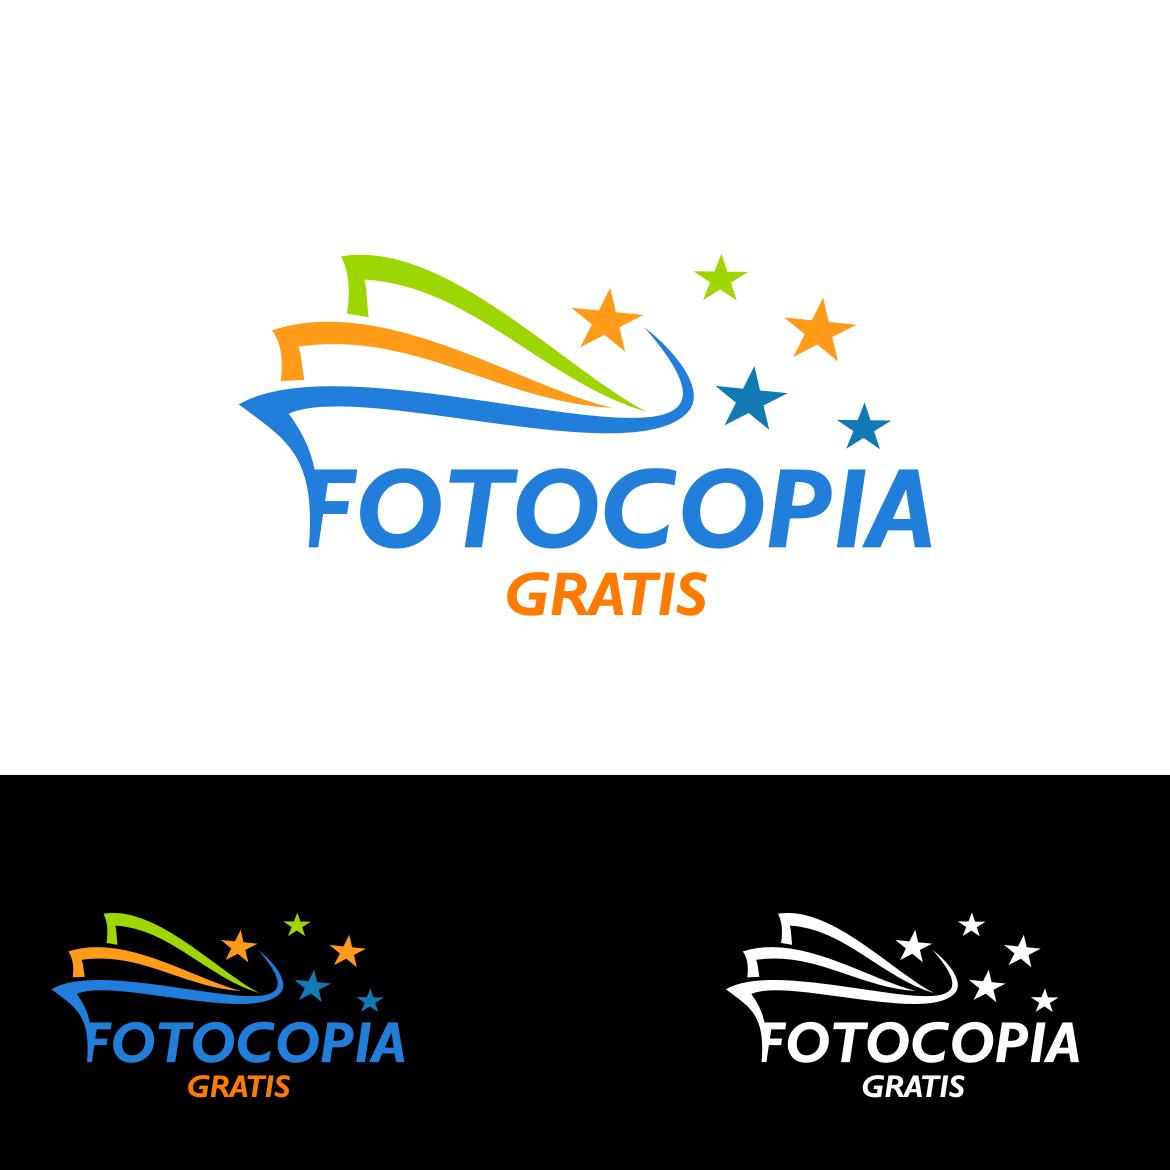 Logo Design by rifatz - Entry No. 229 in the Logo Design Contest Inspiring Logo Design for Fotocopiagratis.